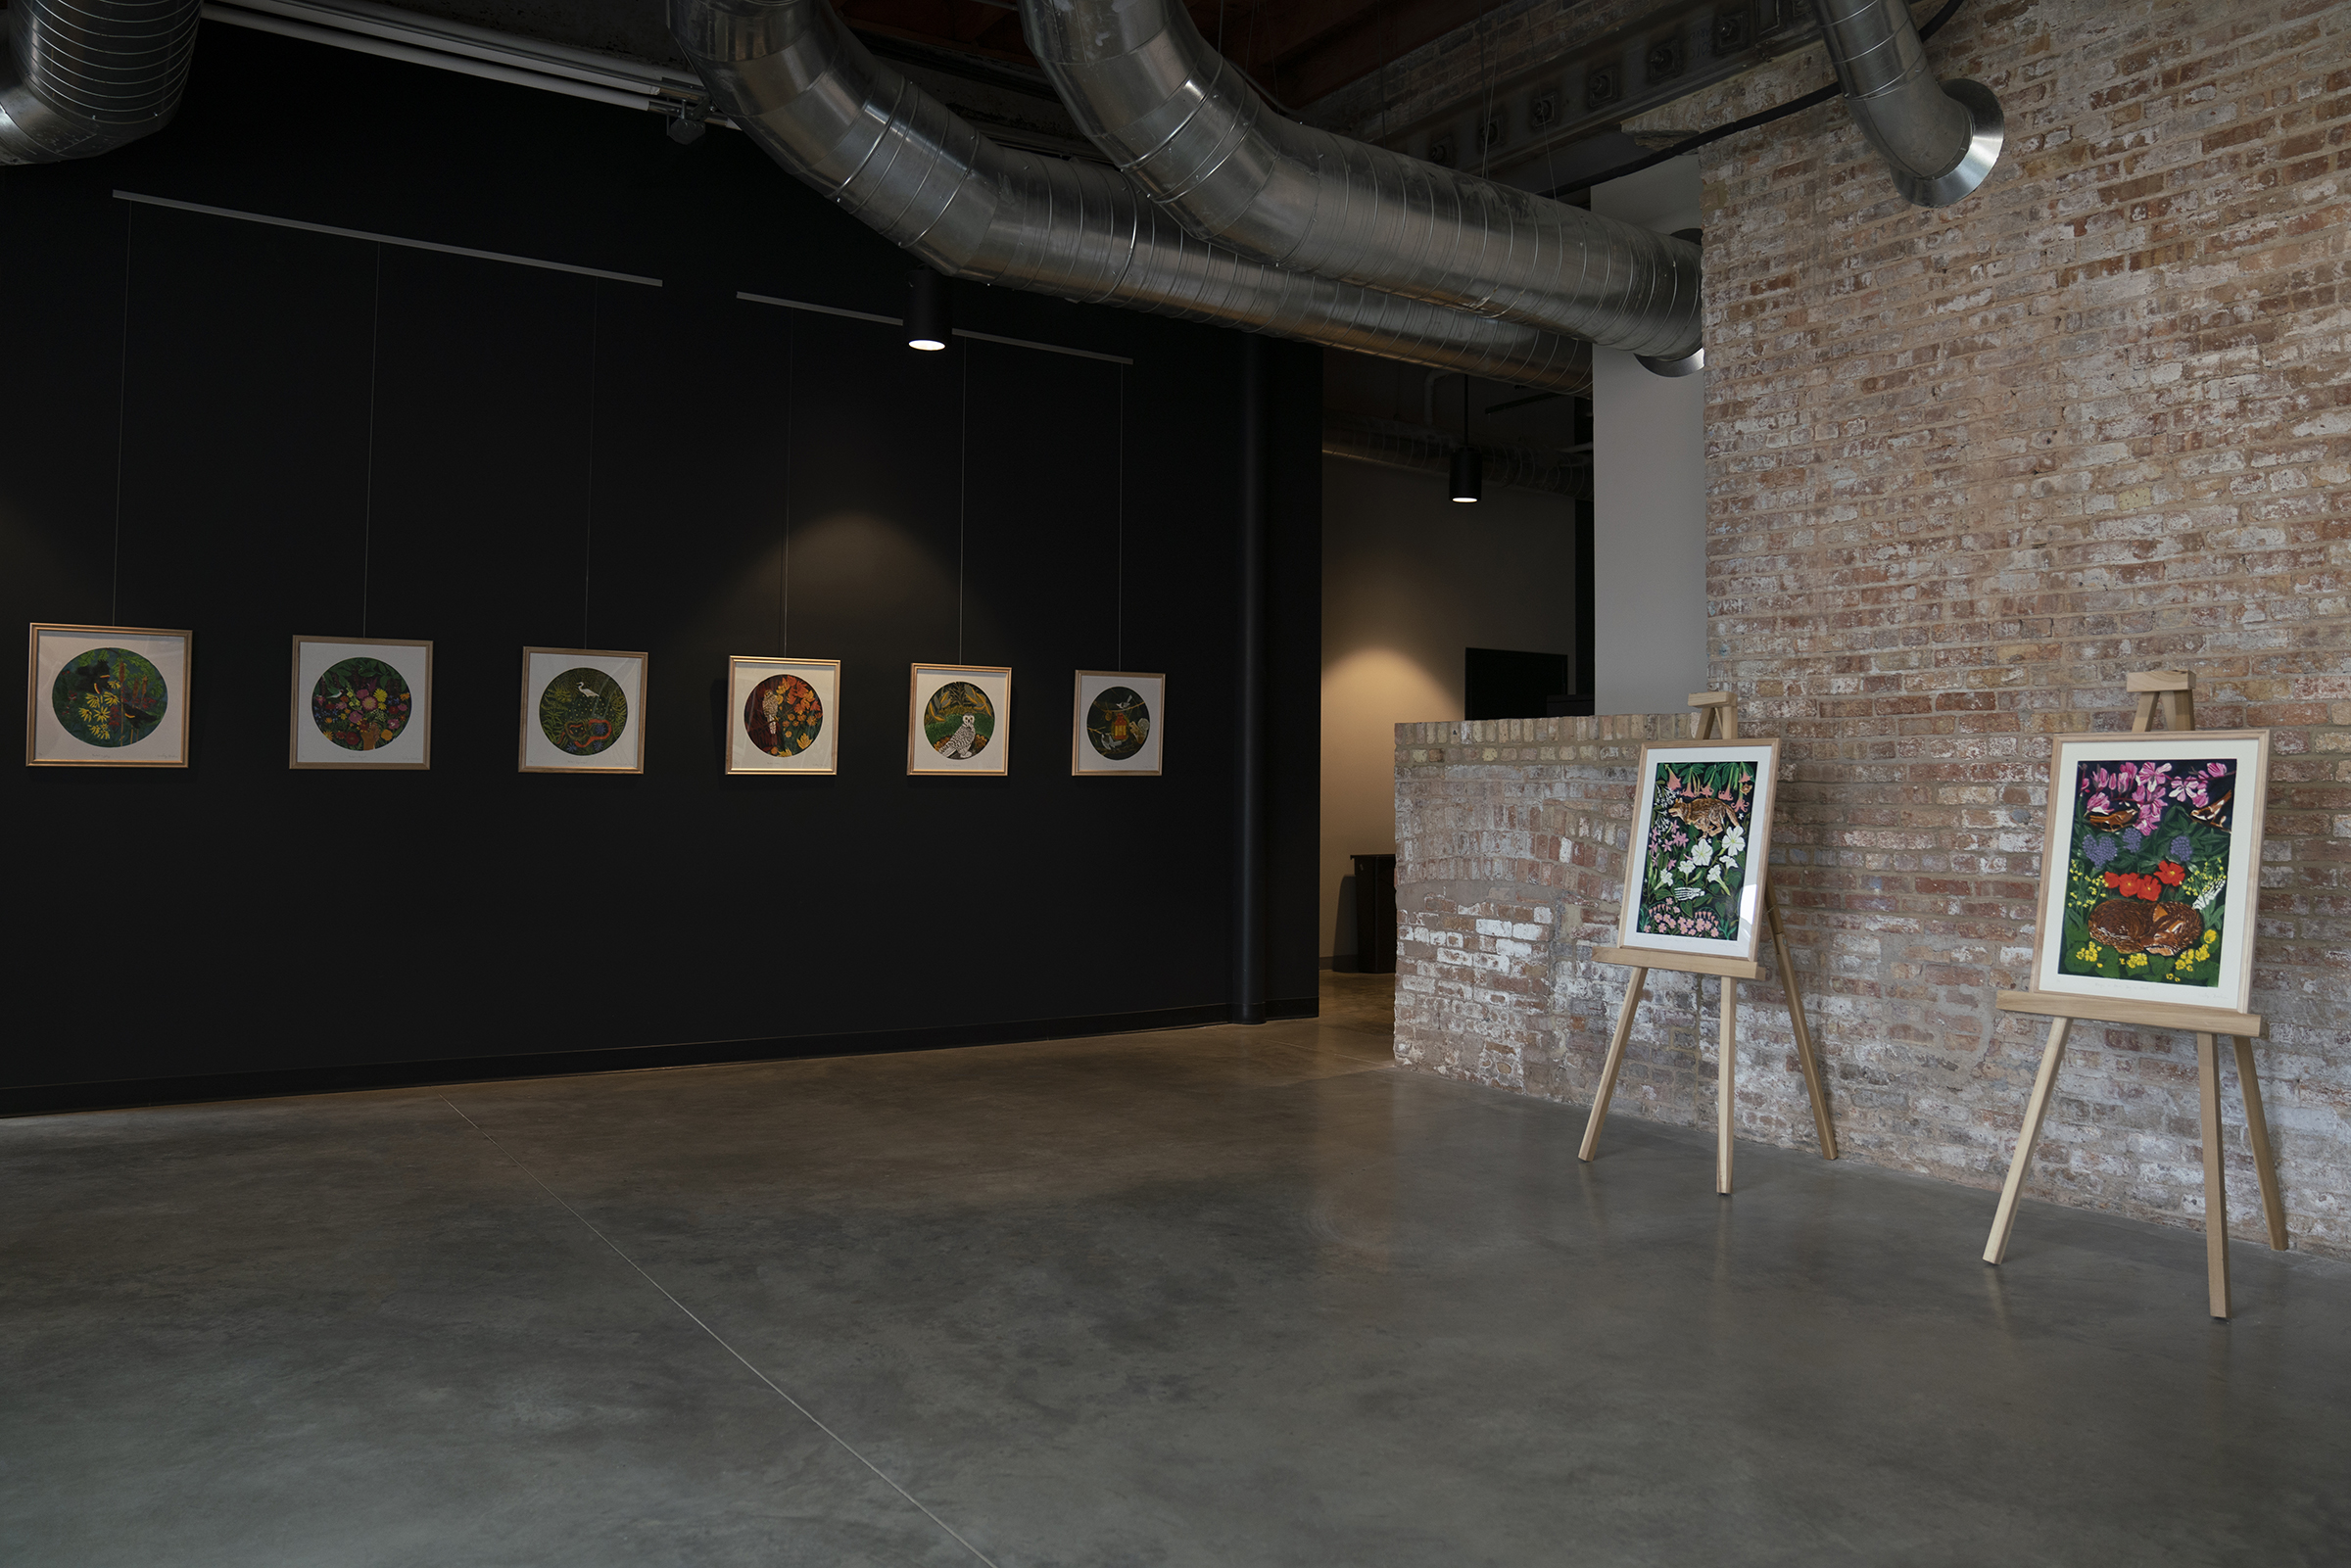 Installation view of MAGIC IS ALIVE, DOG IS AFOOT Master of Fine Arts Exhibition by Lesley Anne Numbers at Garver Feed Mill.